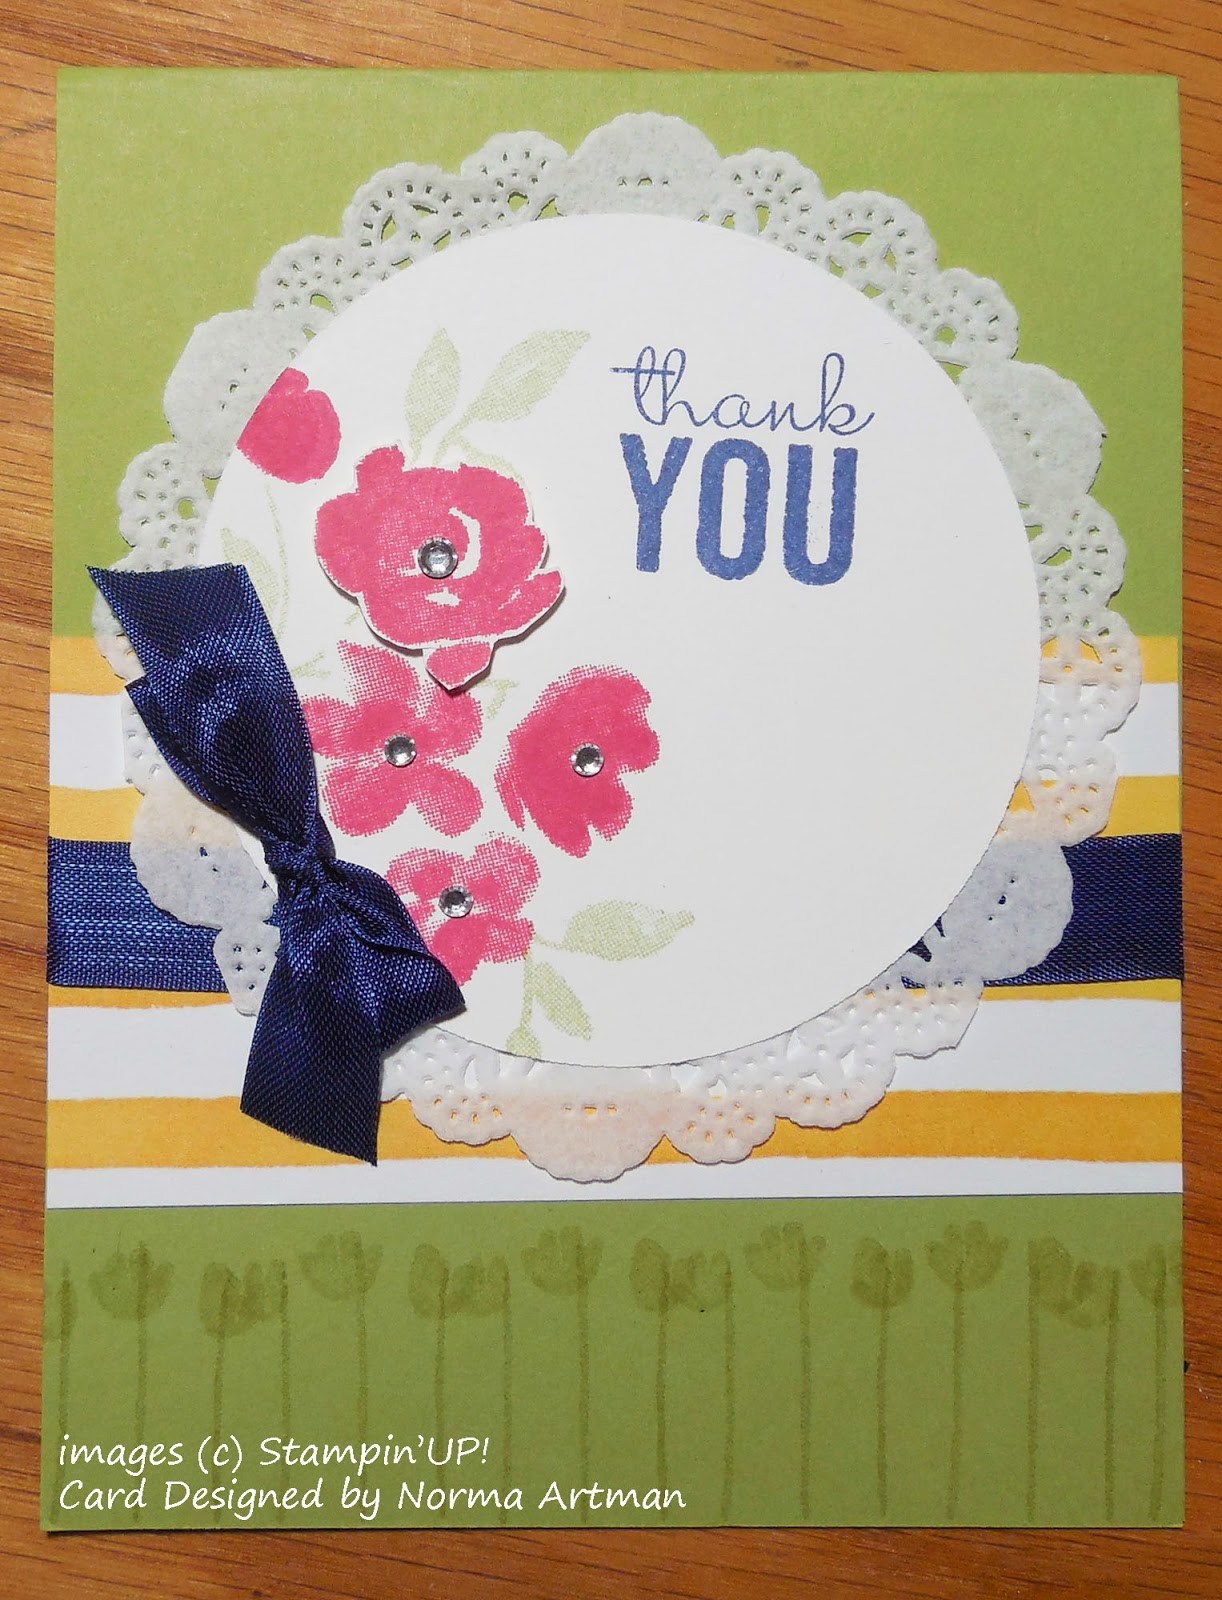 Card made with Stampin'UP!'s Painted Petals Stamp set